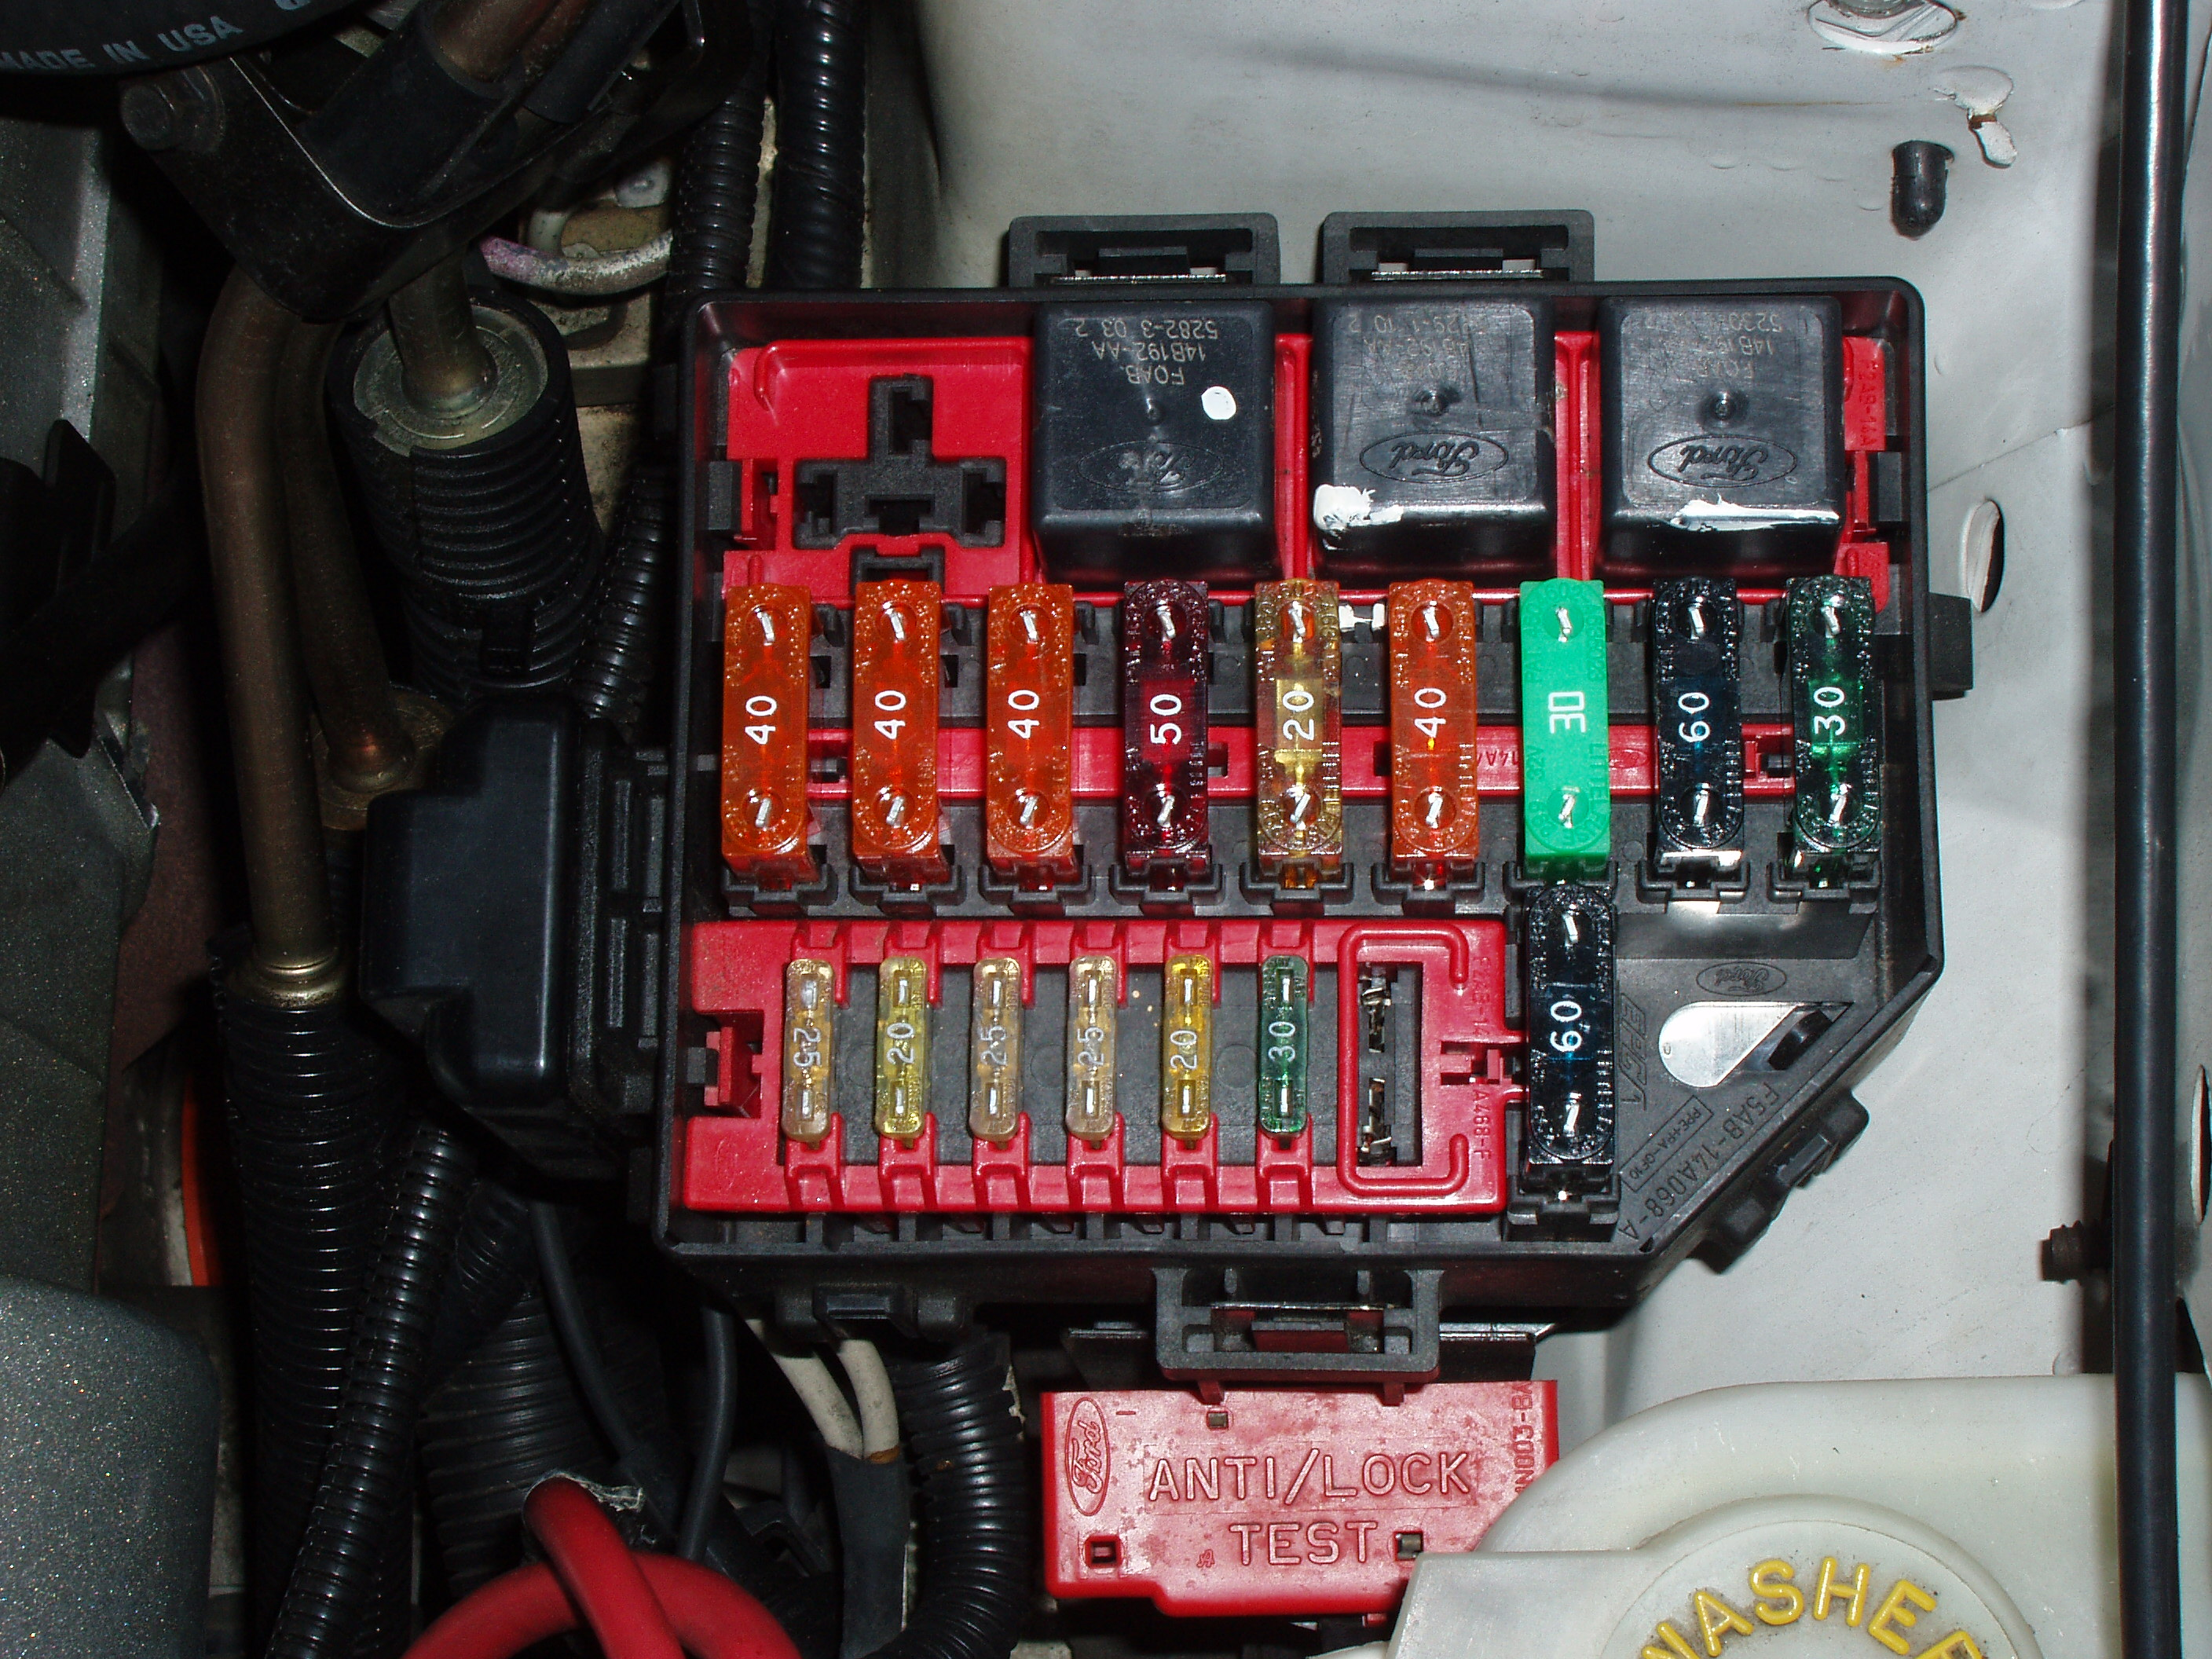 2004 Mustang Fuse Box Location List Of Schematic Circuit Diagram \u2022  1995 Mustang Fuse Box 04 Mustang Fuse Box